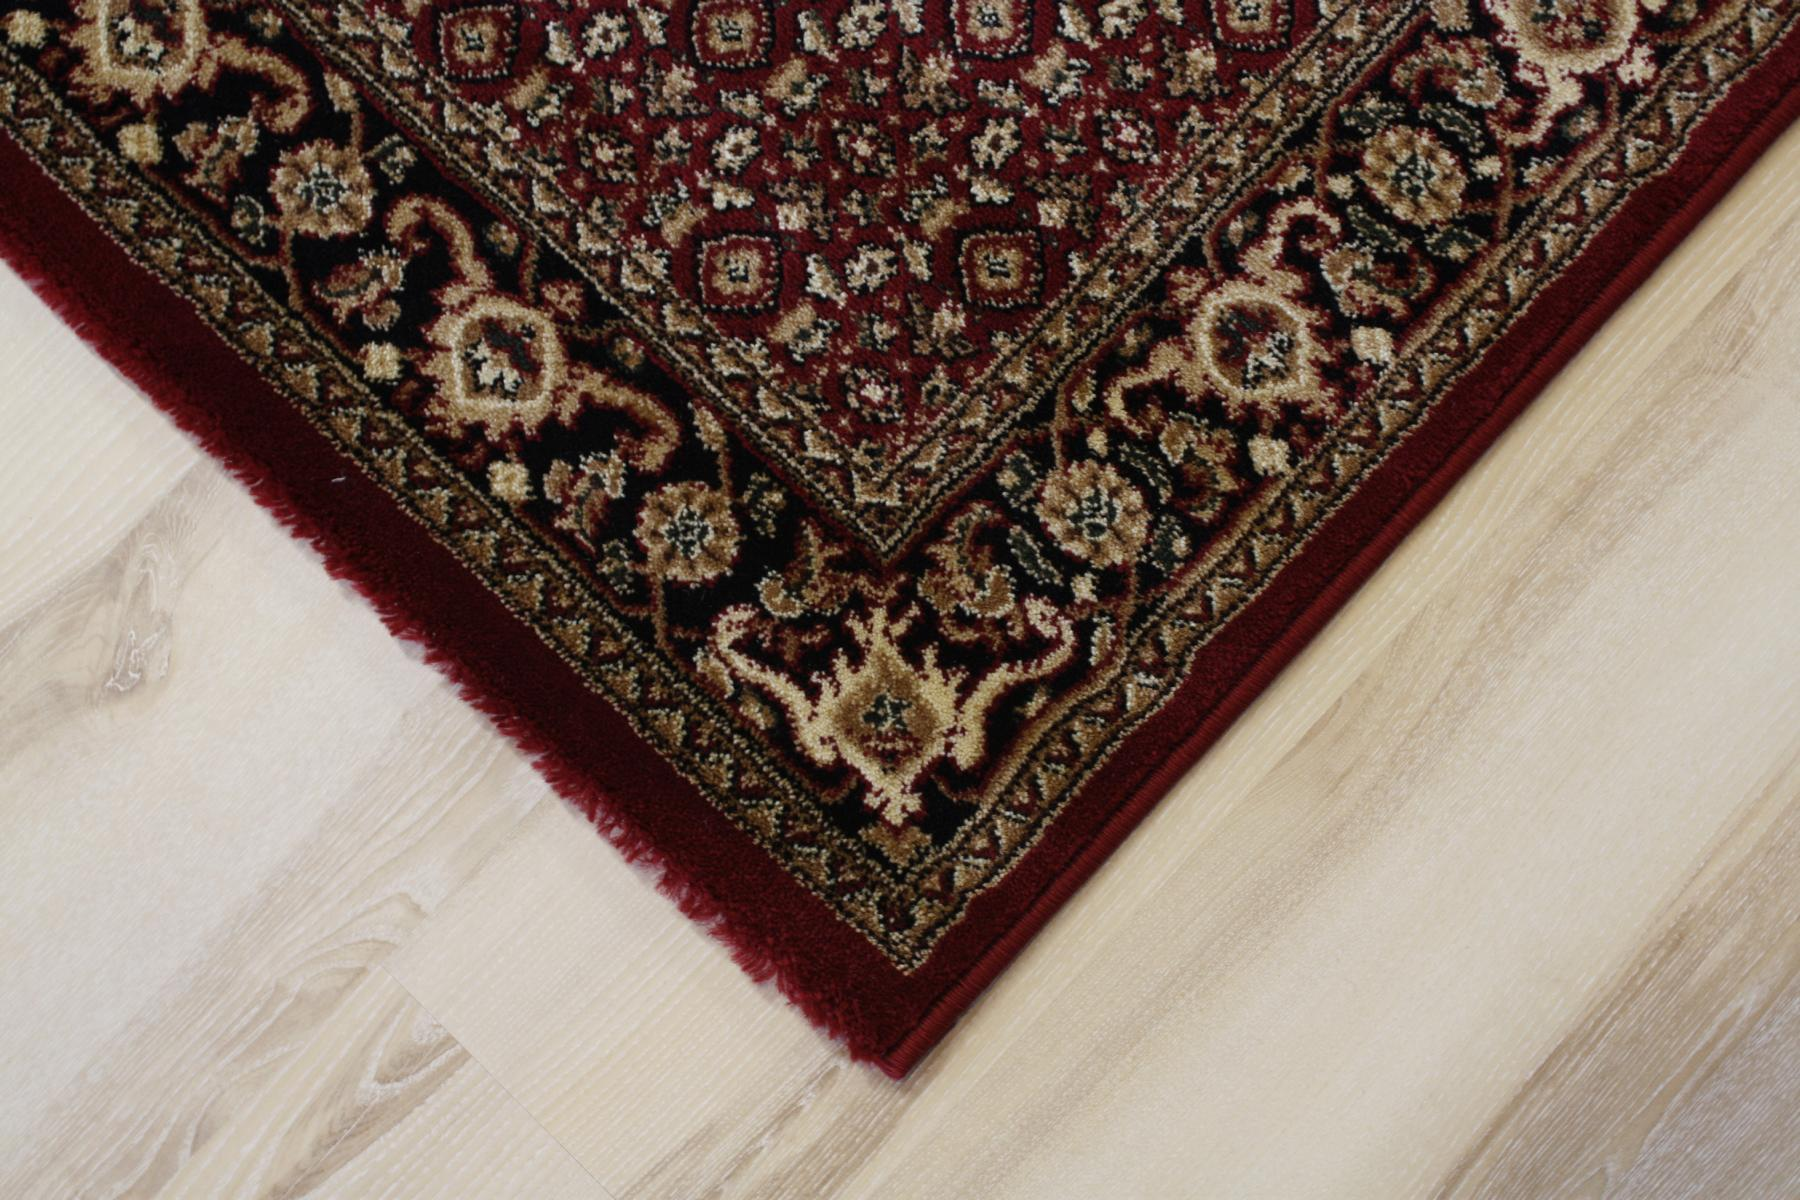 Machine Carpet Oriental Rug Marrakesh 206 Rot 120x170cm  eBay